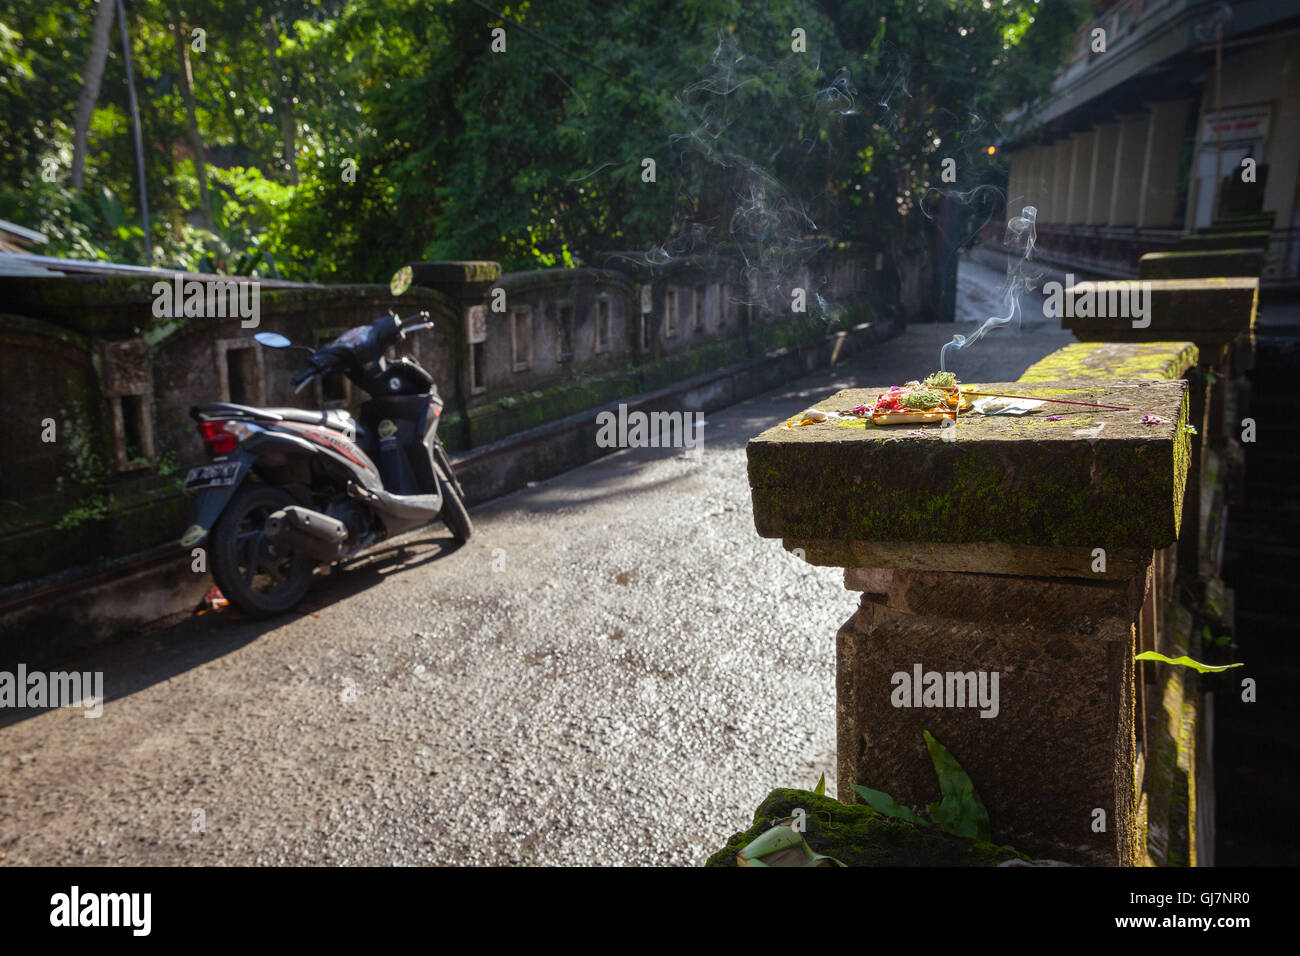 Burning offerings on the old mossy bridge in the morning hour, Ubud, Bali, Indonesia. - Stock Image